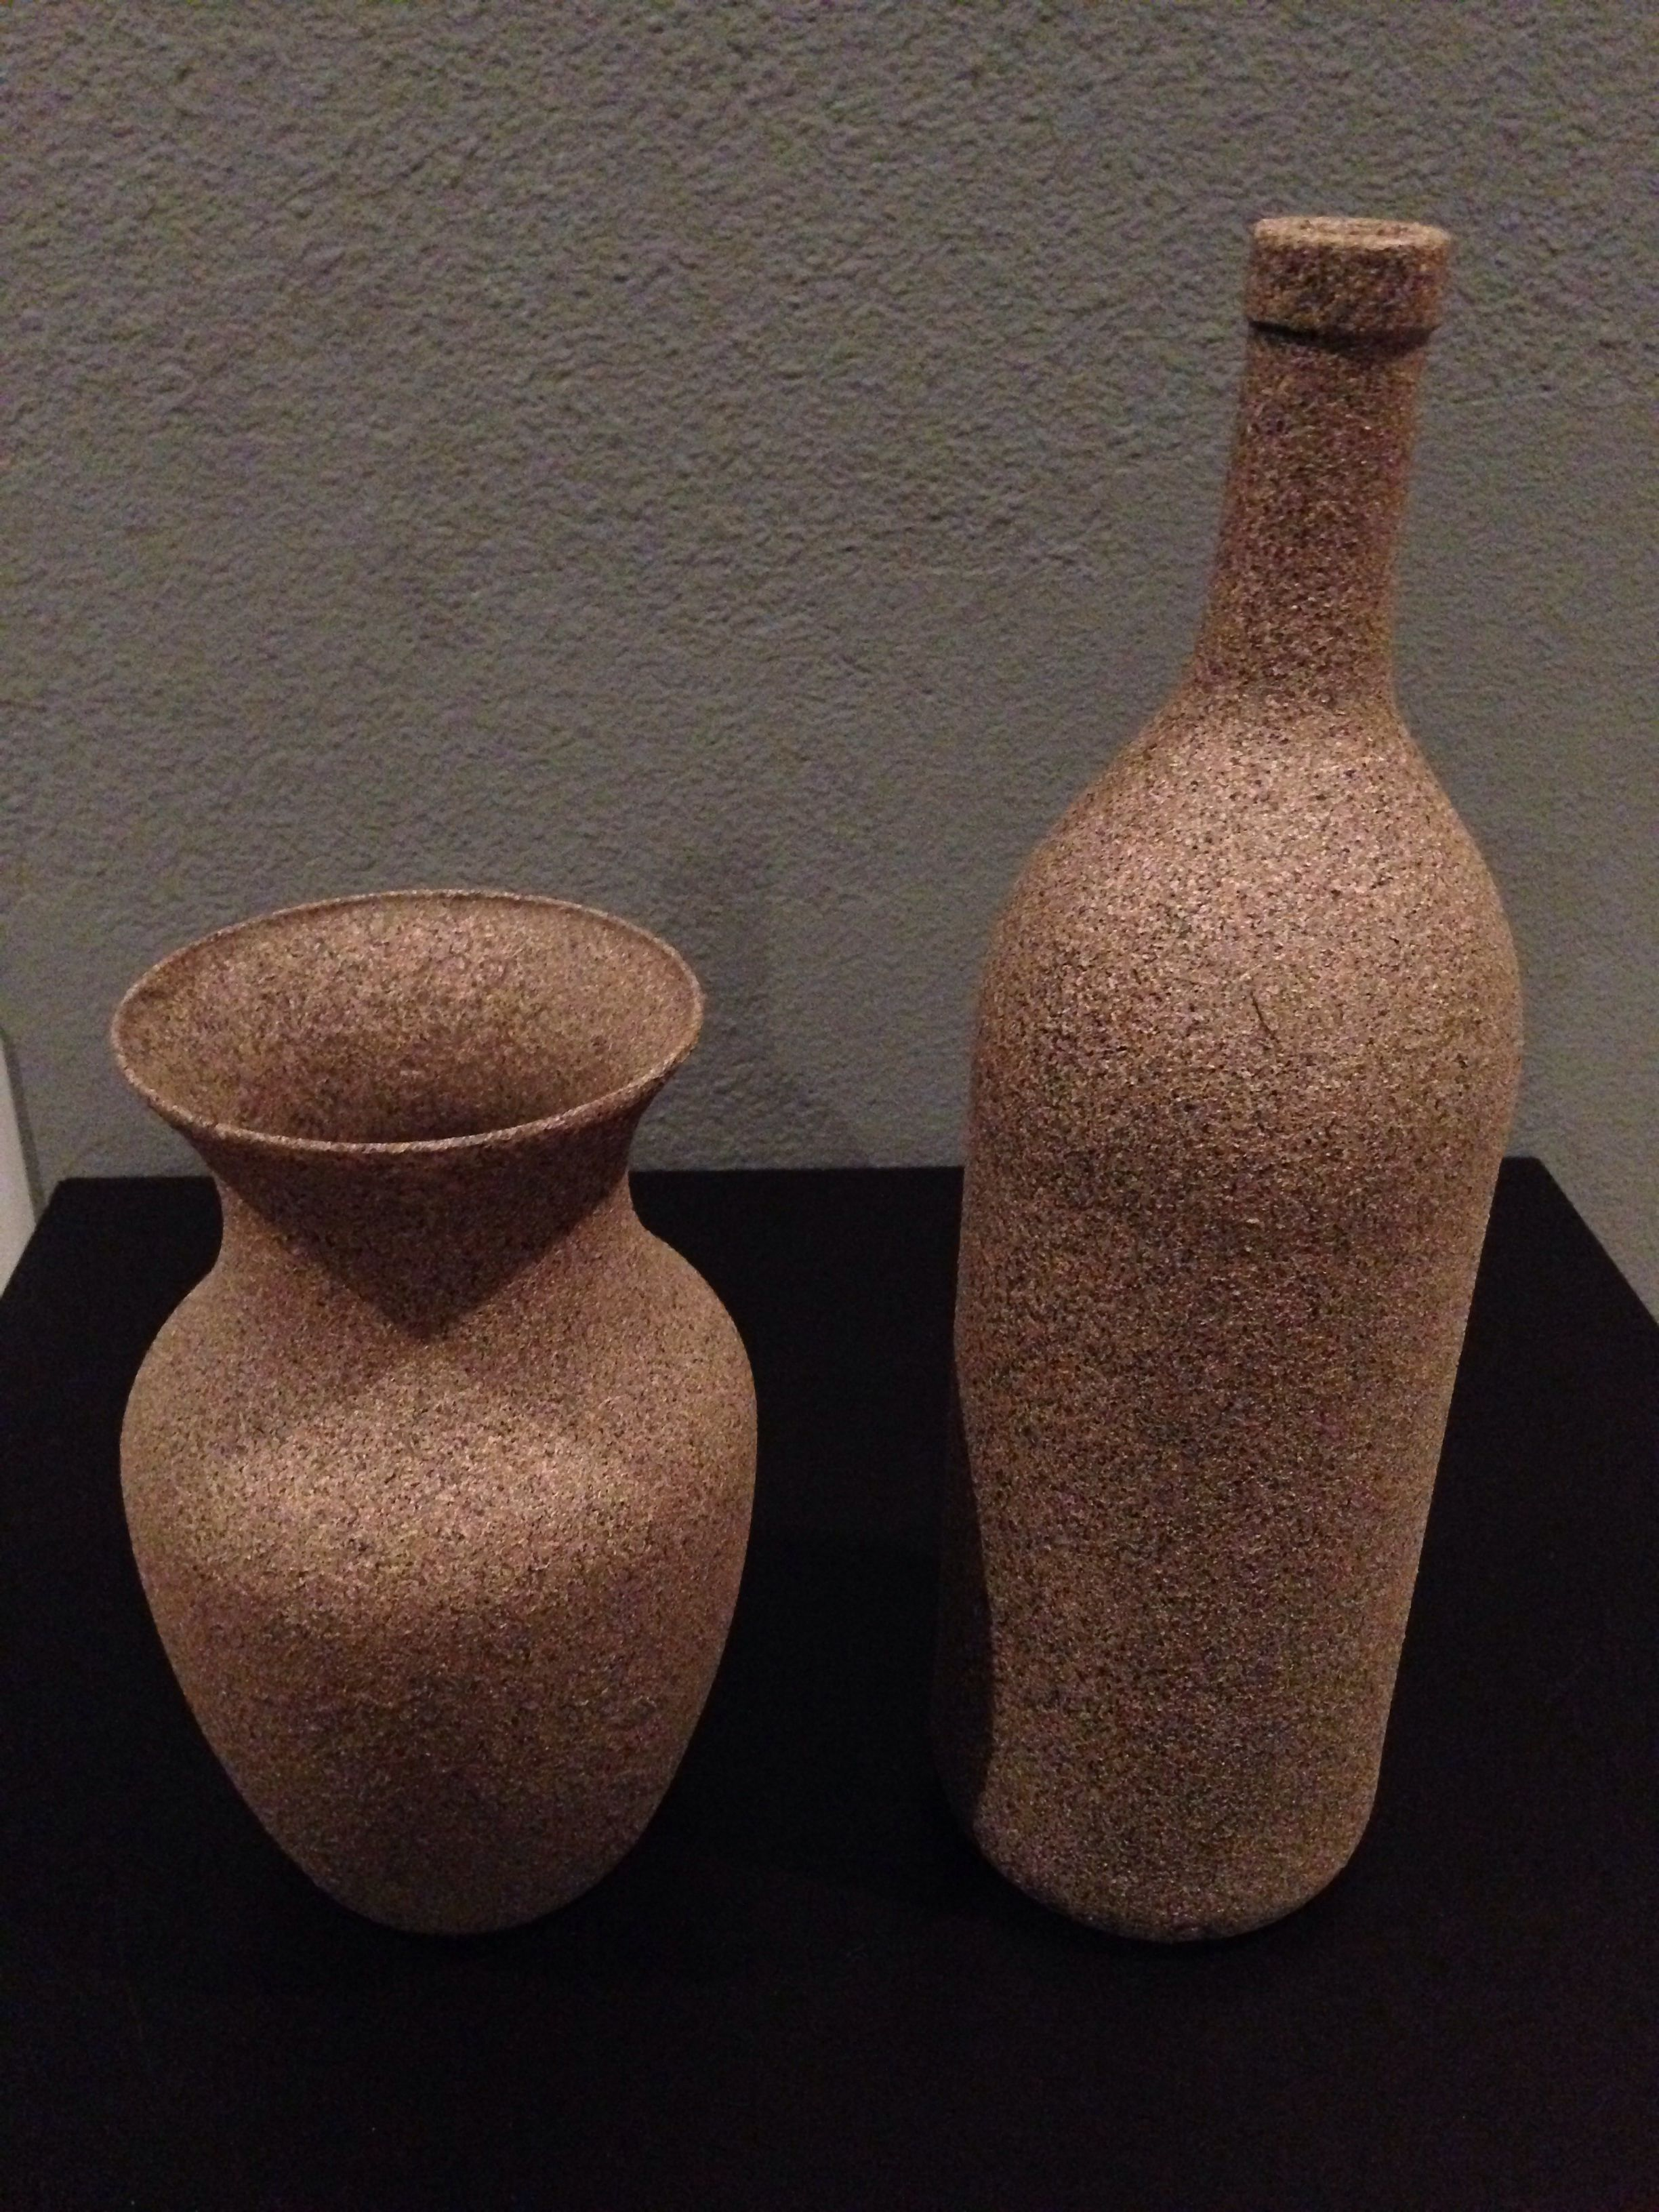 Spray Painted Stone Texture Glass Vase And Wine Glass Stone Spray Paint Whiskey Bottle Crafts Textured Spray Paint